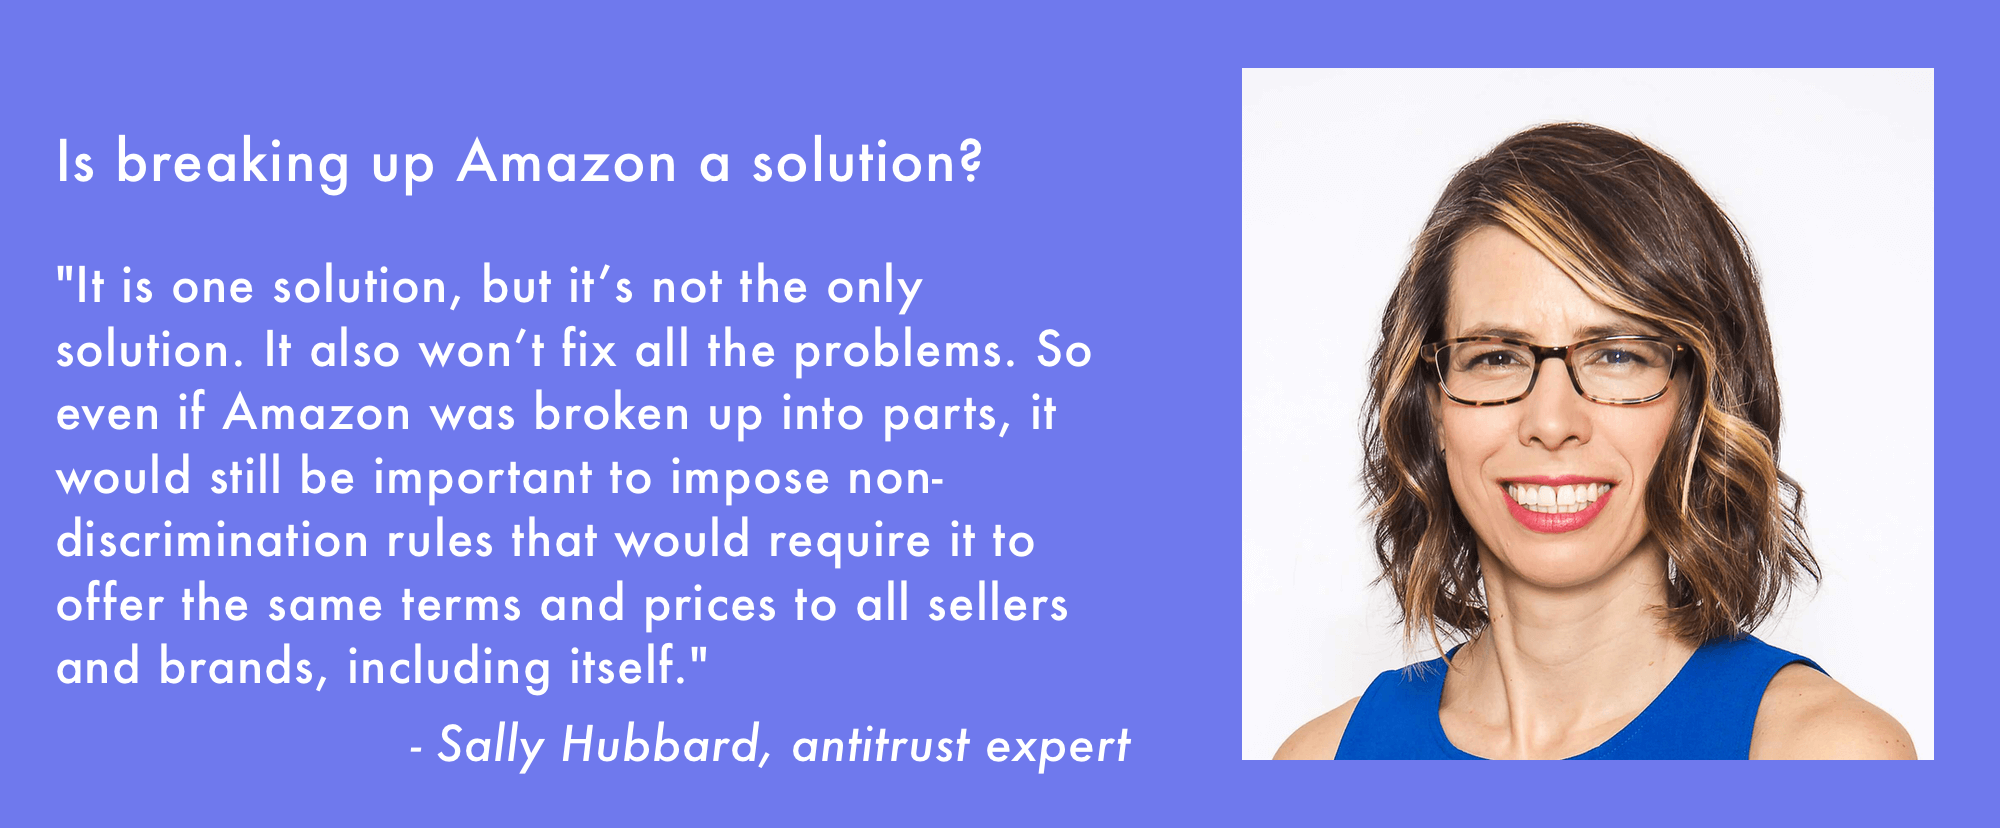 Sally Hubbard quote Is breaking up Amazon a solution?